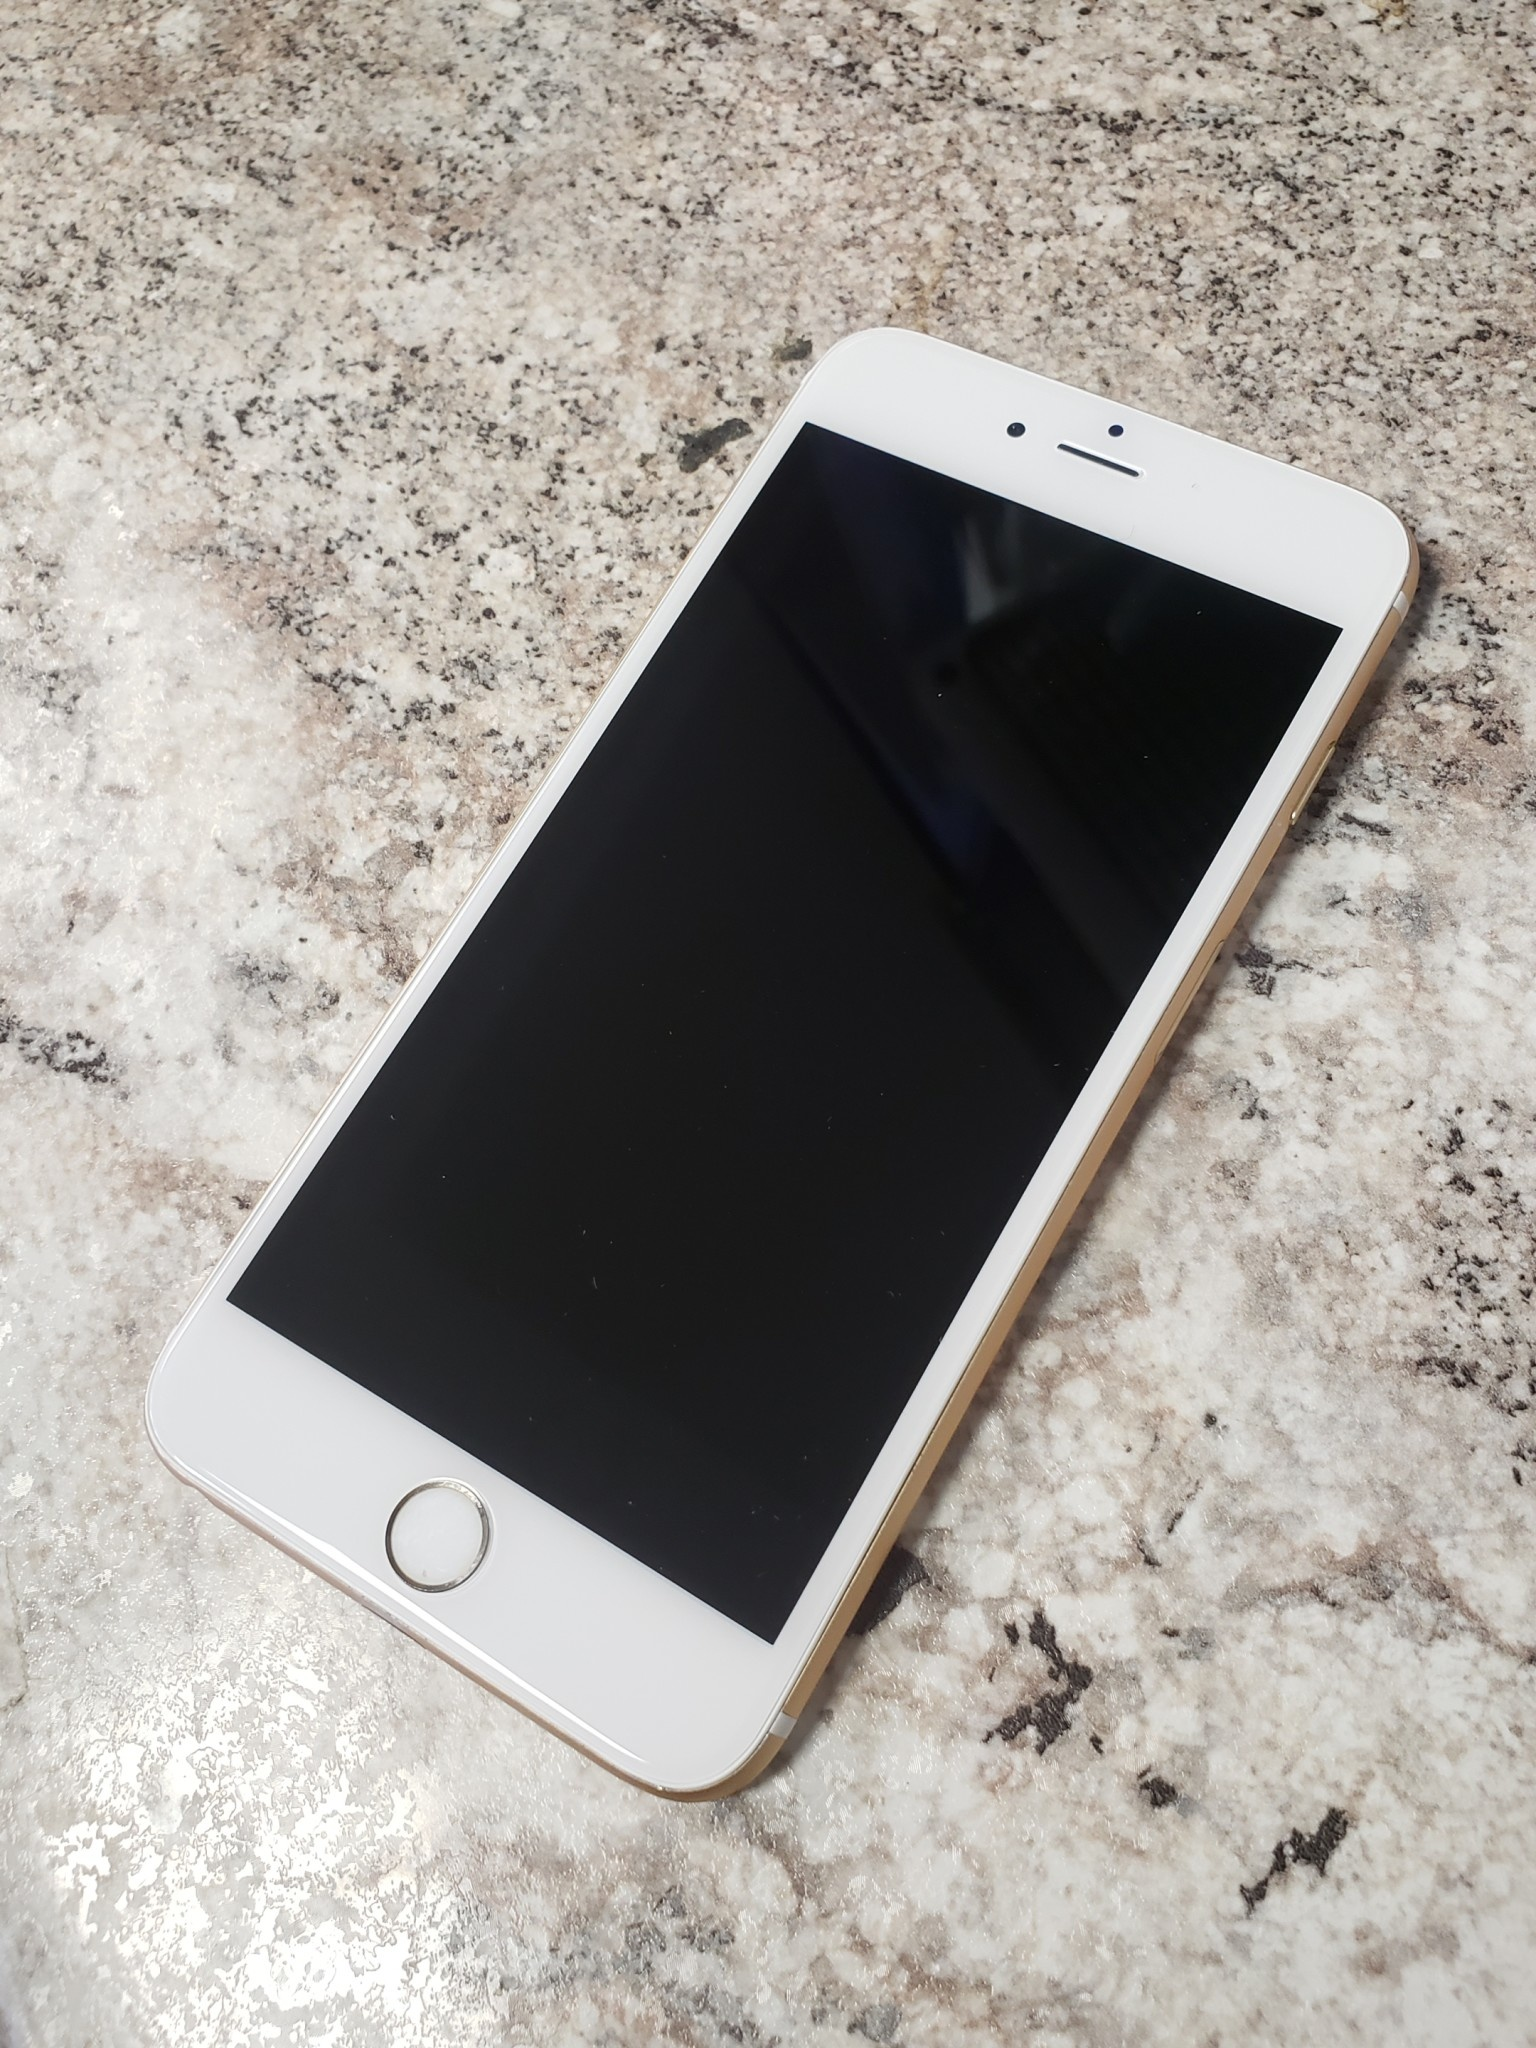 AT&T/Cricket - iPhone 6S Plus - 64GB - Gold